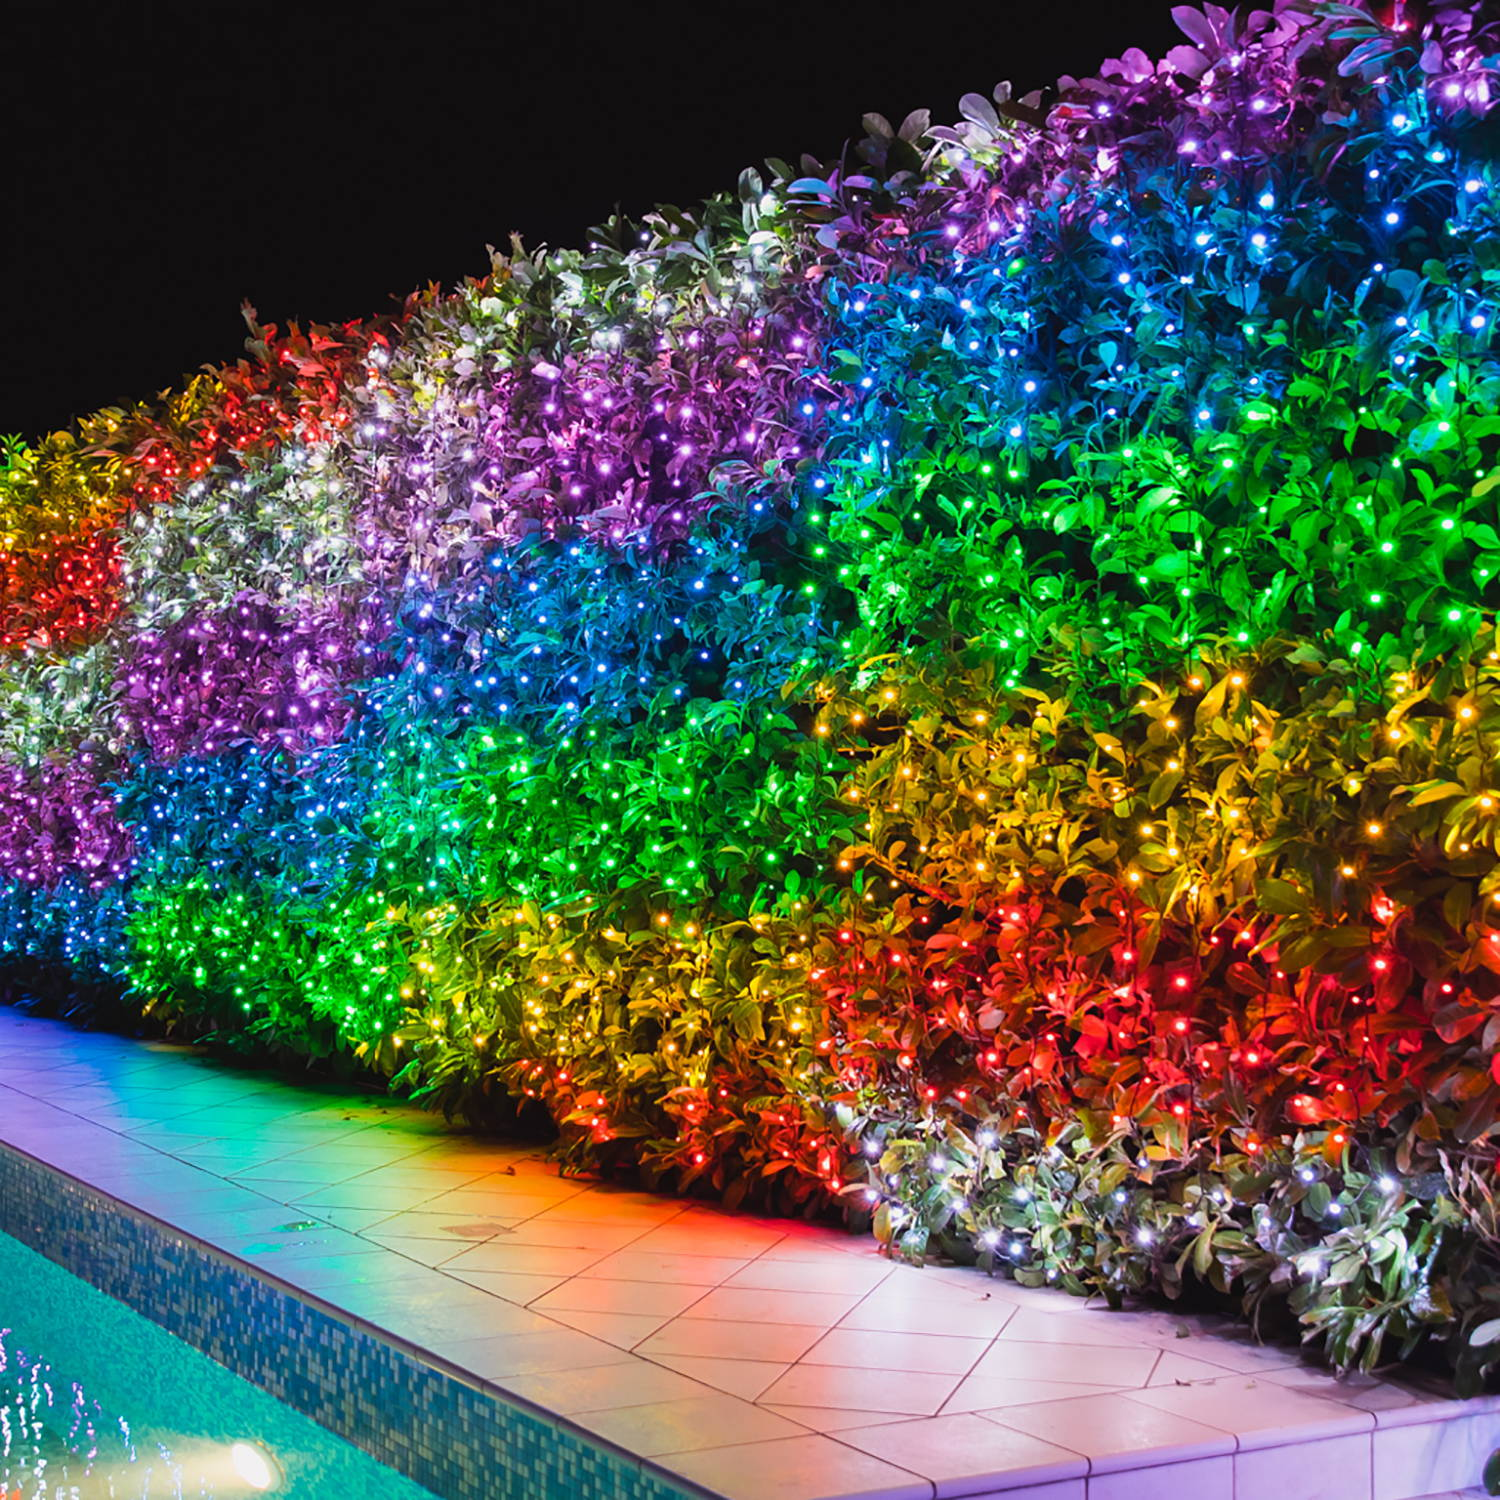 Multi coloured Twinkly lights illuminating garden hedge